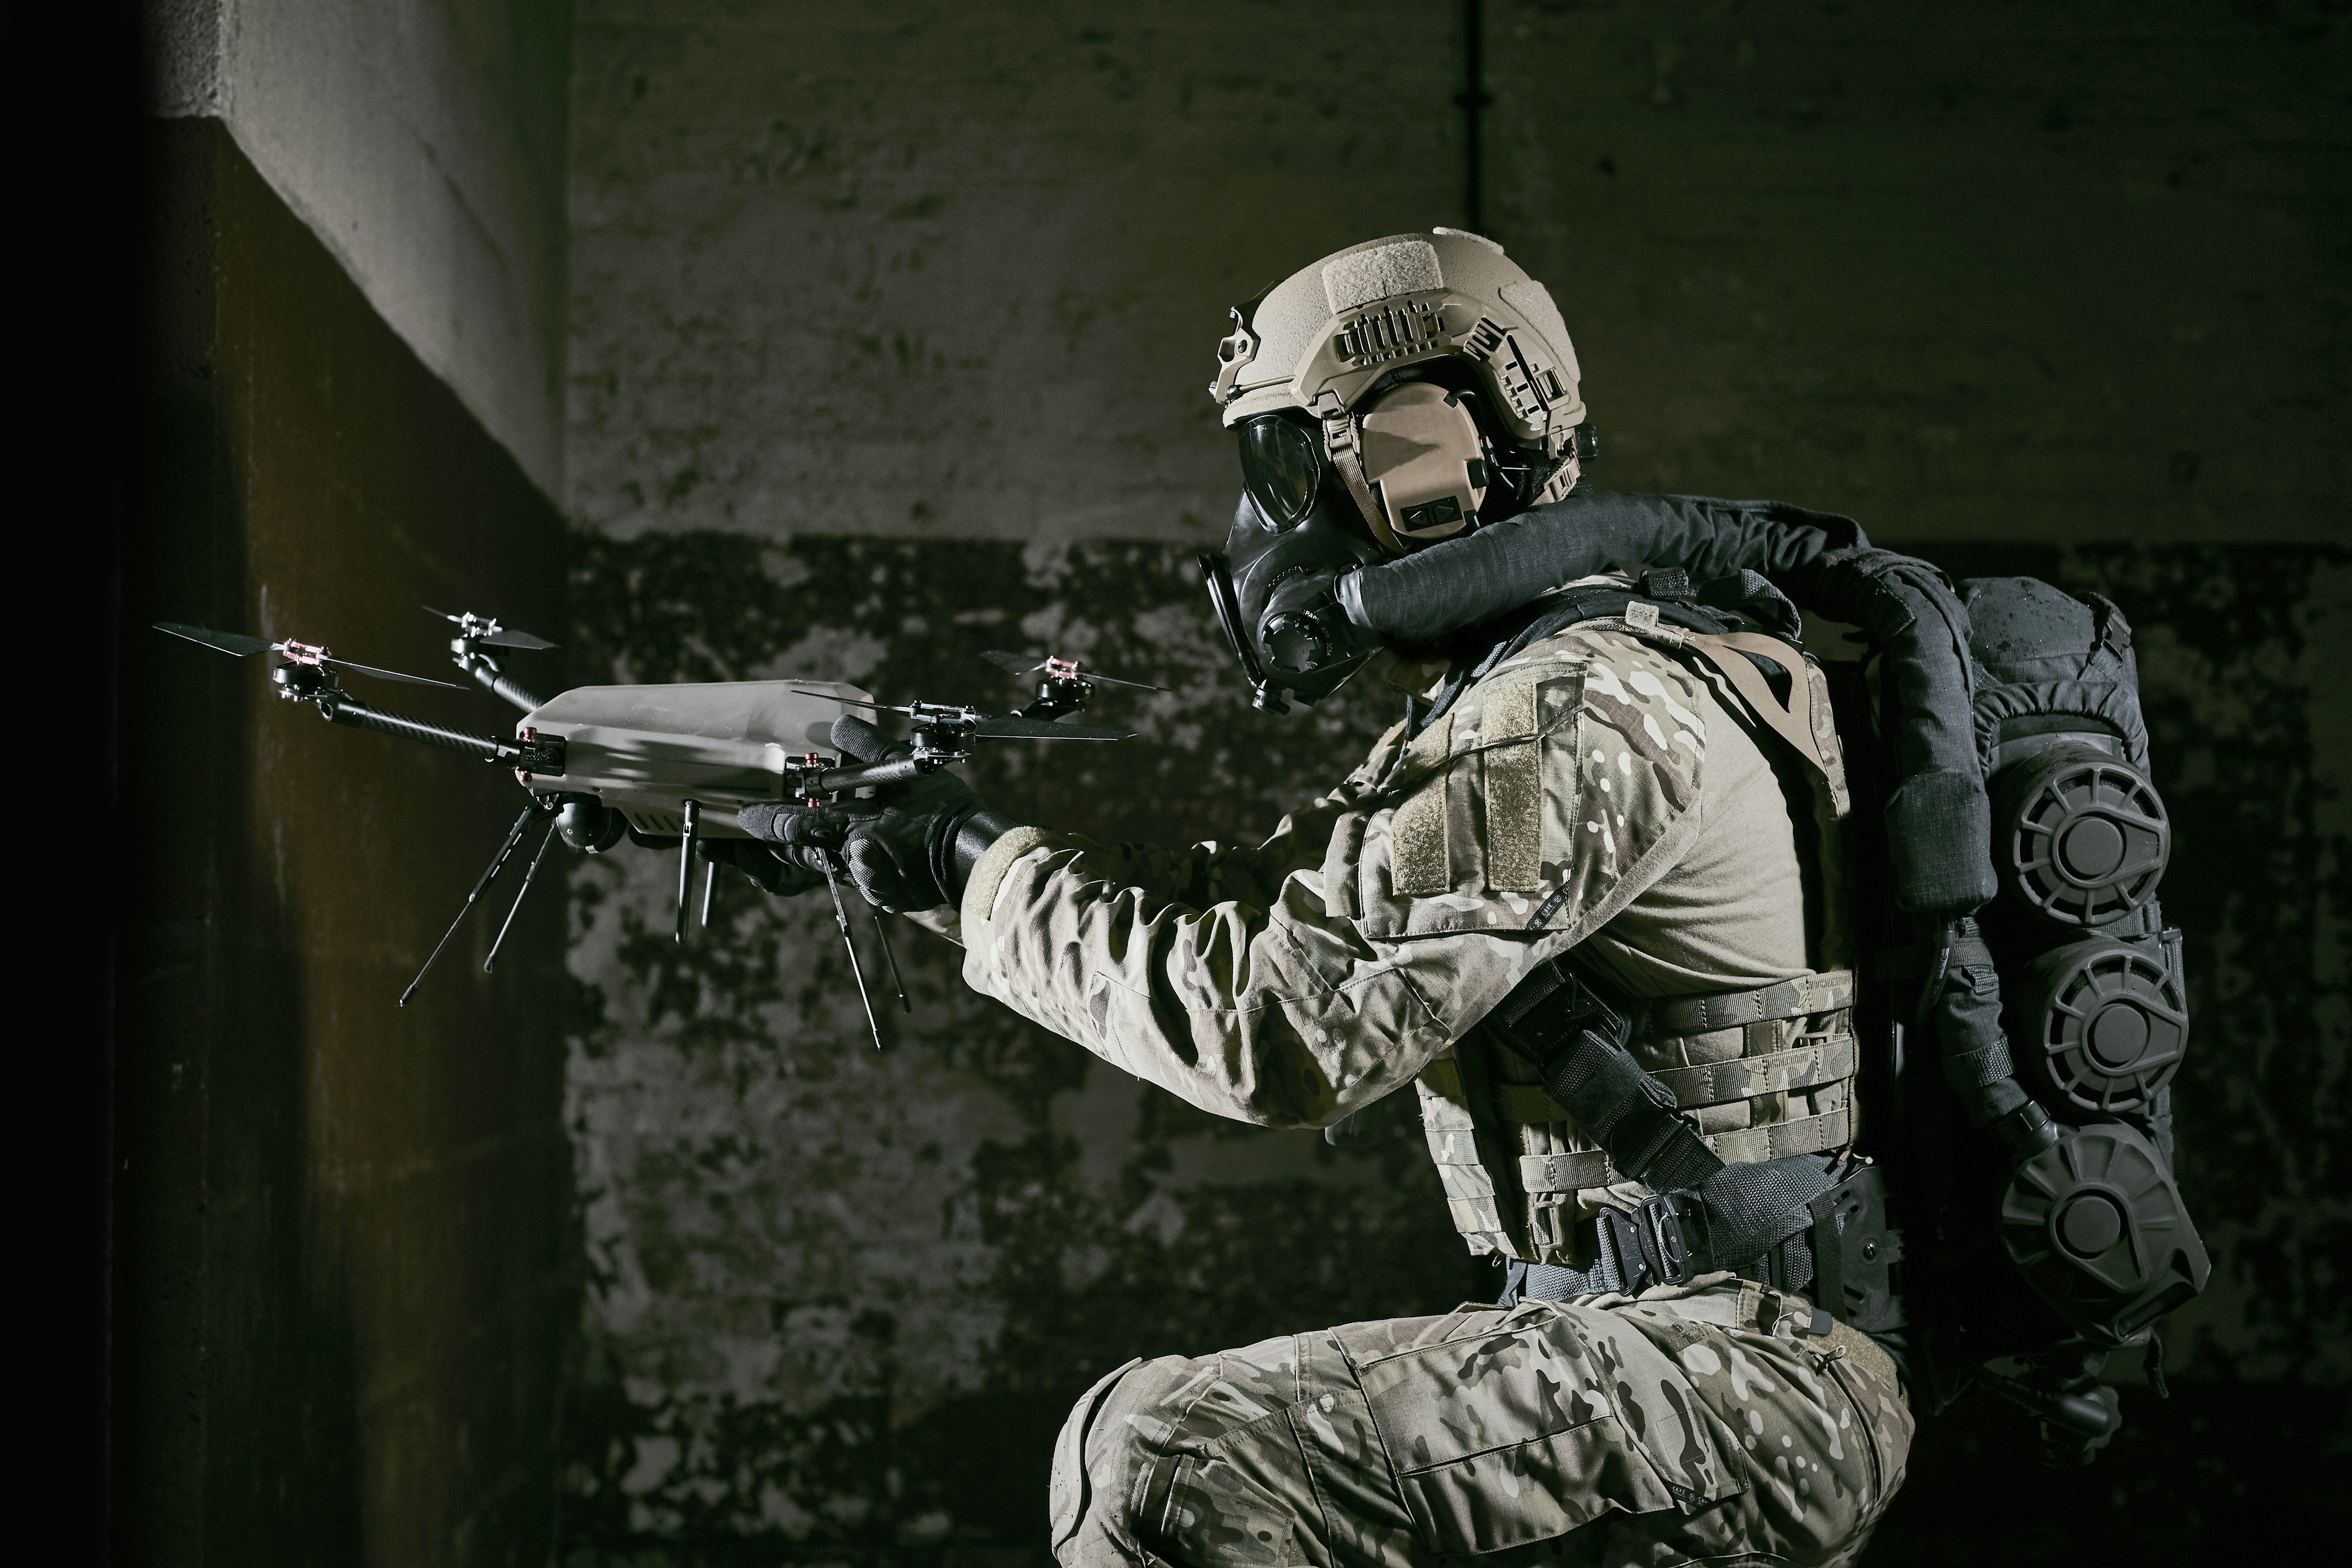 Avon Protection showcase respiratory and ballistic protection together at AUSA 2021